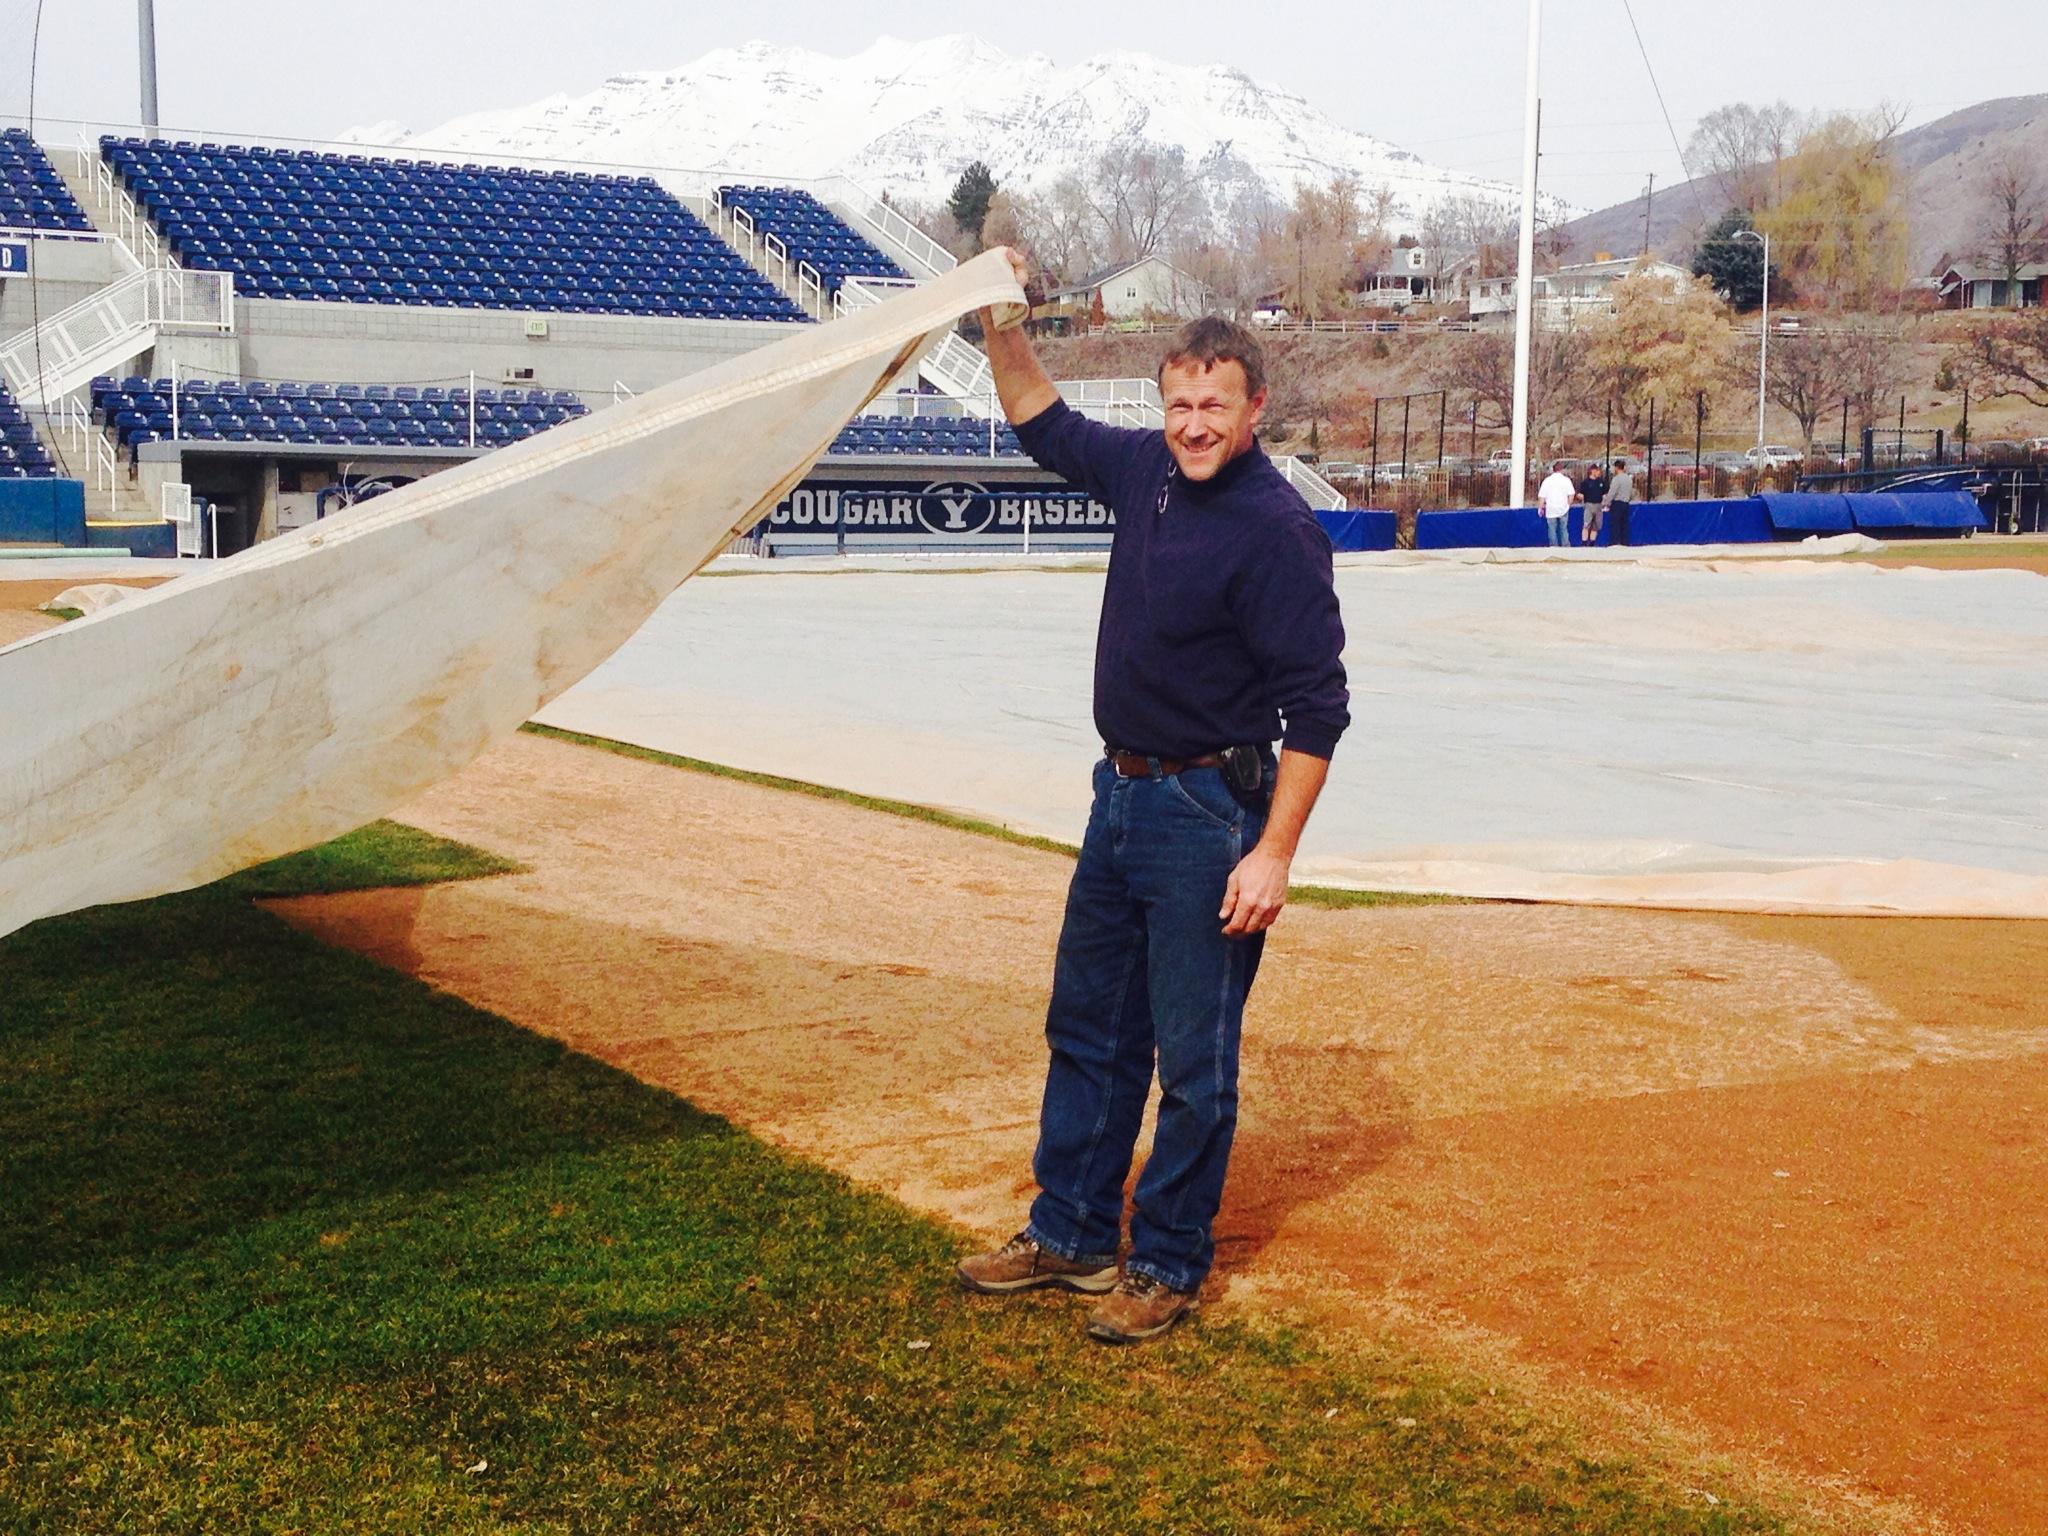 Brian Hill prepares the baseball field for the season. Photo by Madison Parks